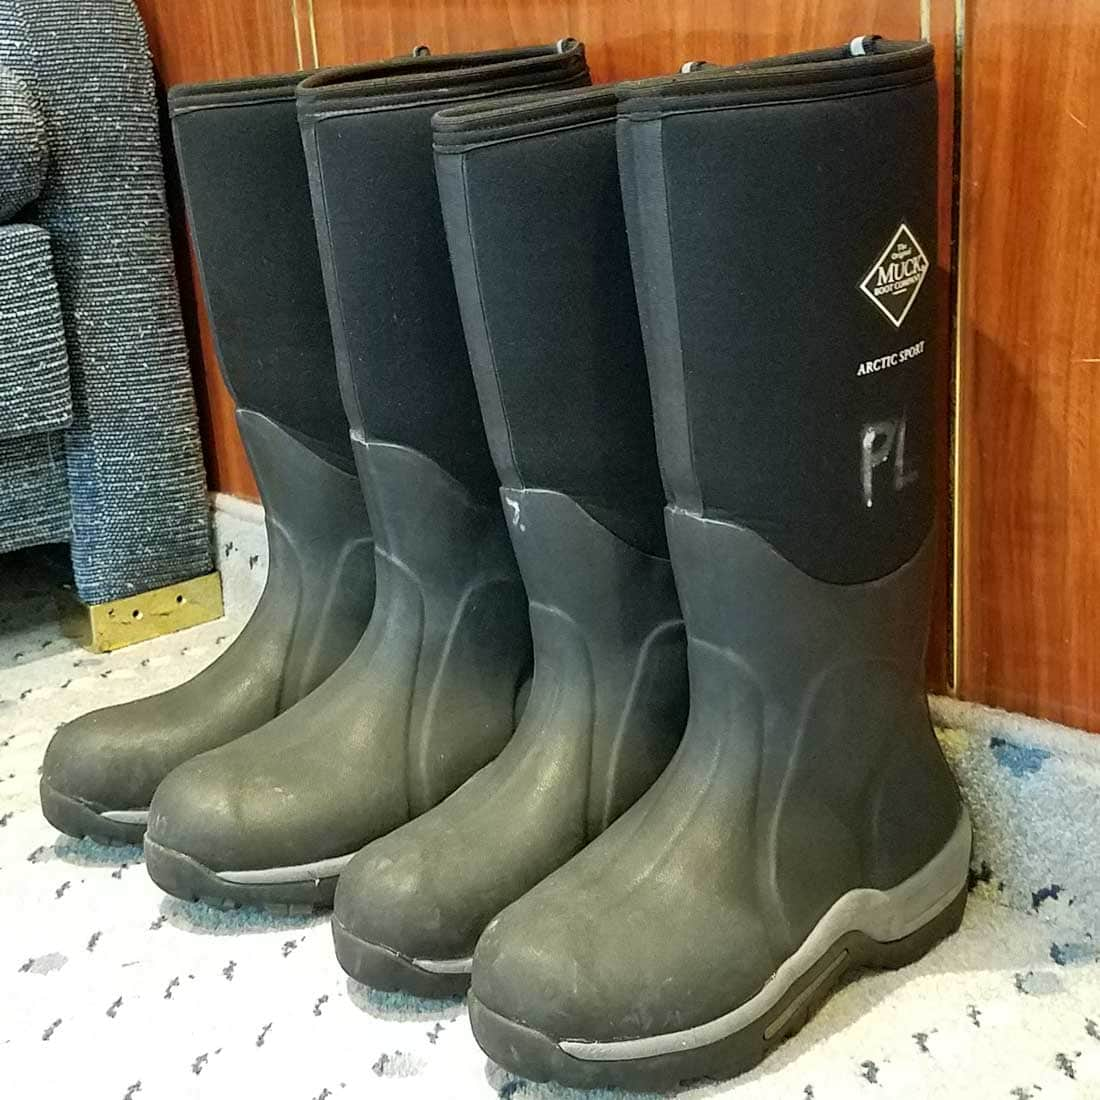 MUCK boots keep feet staying warm on Antarctica ice and in cold water.